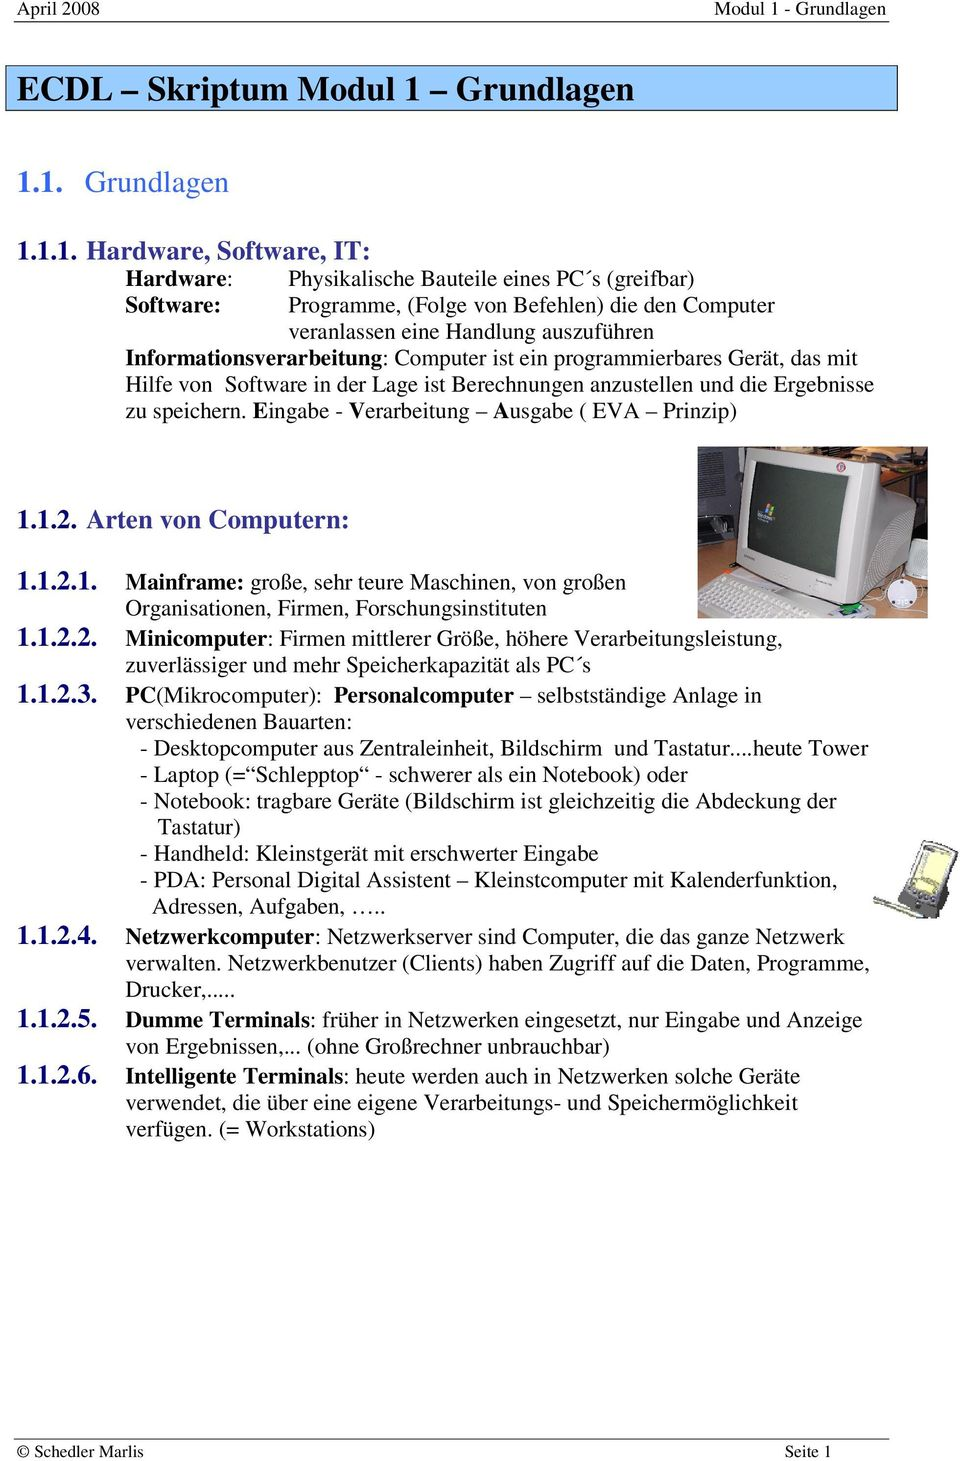 1. 1.1. Hardware, Software, IT: Hardware: Physikalische Bauteile eines PC s (greifbar) Software: Programme, (Folge von Befehlen) die den Computer veranlassen eine Handlung auszuführen